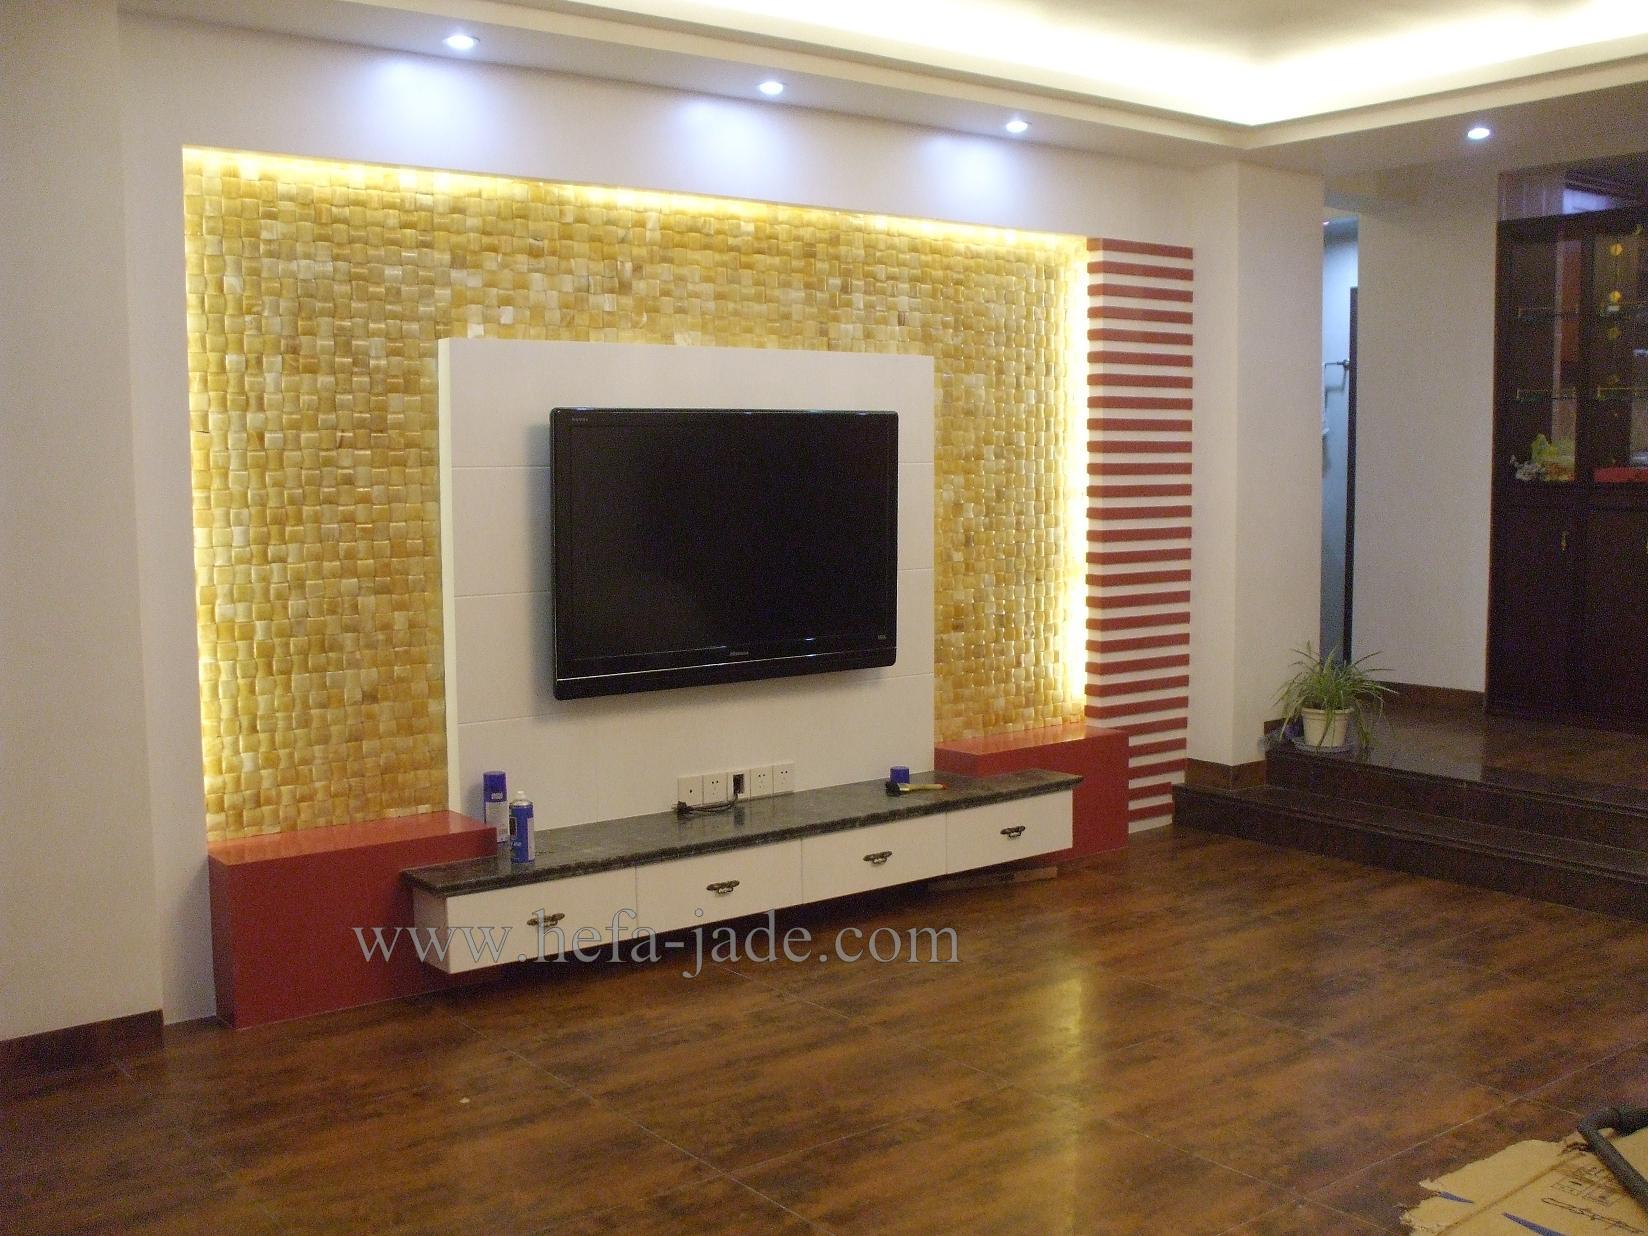 TV Background Wall Decorationjpg 16482151236 Living  : TV Background Wall Decoration from www.pinterest.com size 1648 x 1236 jpeg 266kB